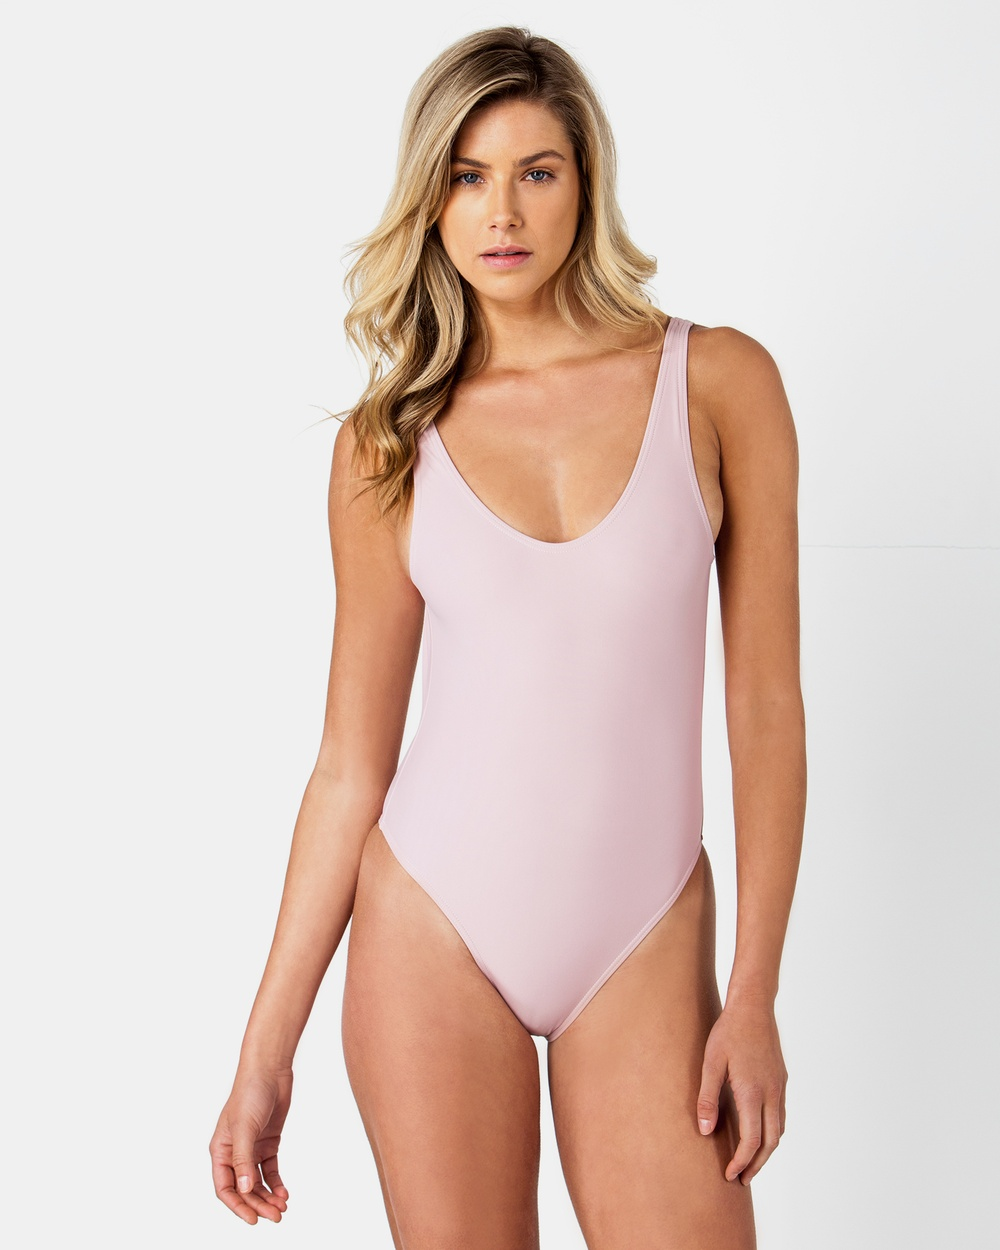 ONEBYONE Blank Swimsuit One-Piece / Swimsuit Blush Blank Swimsuit